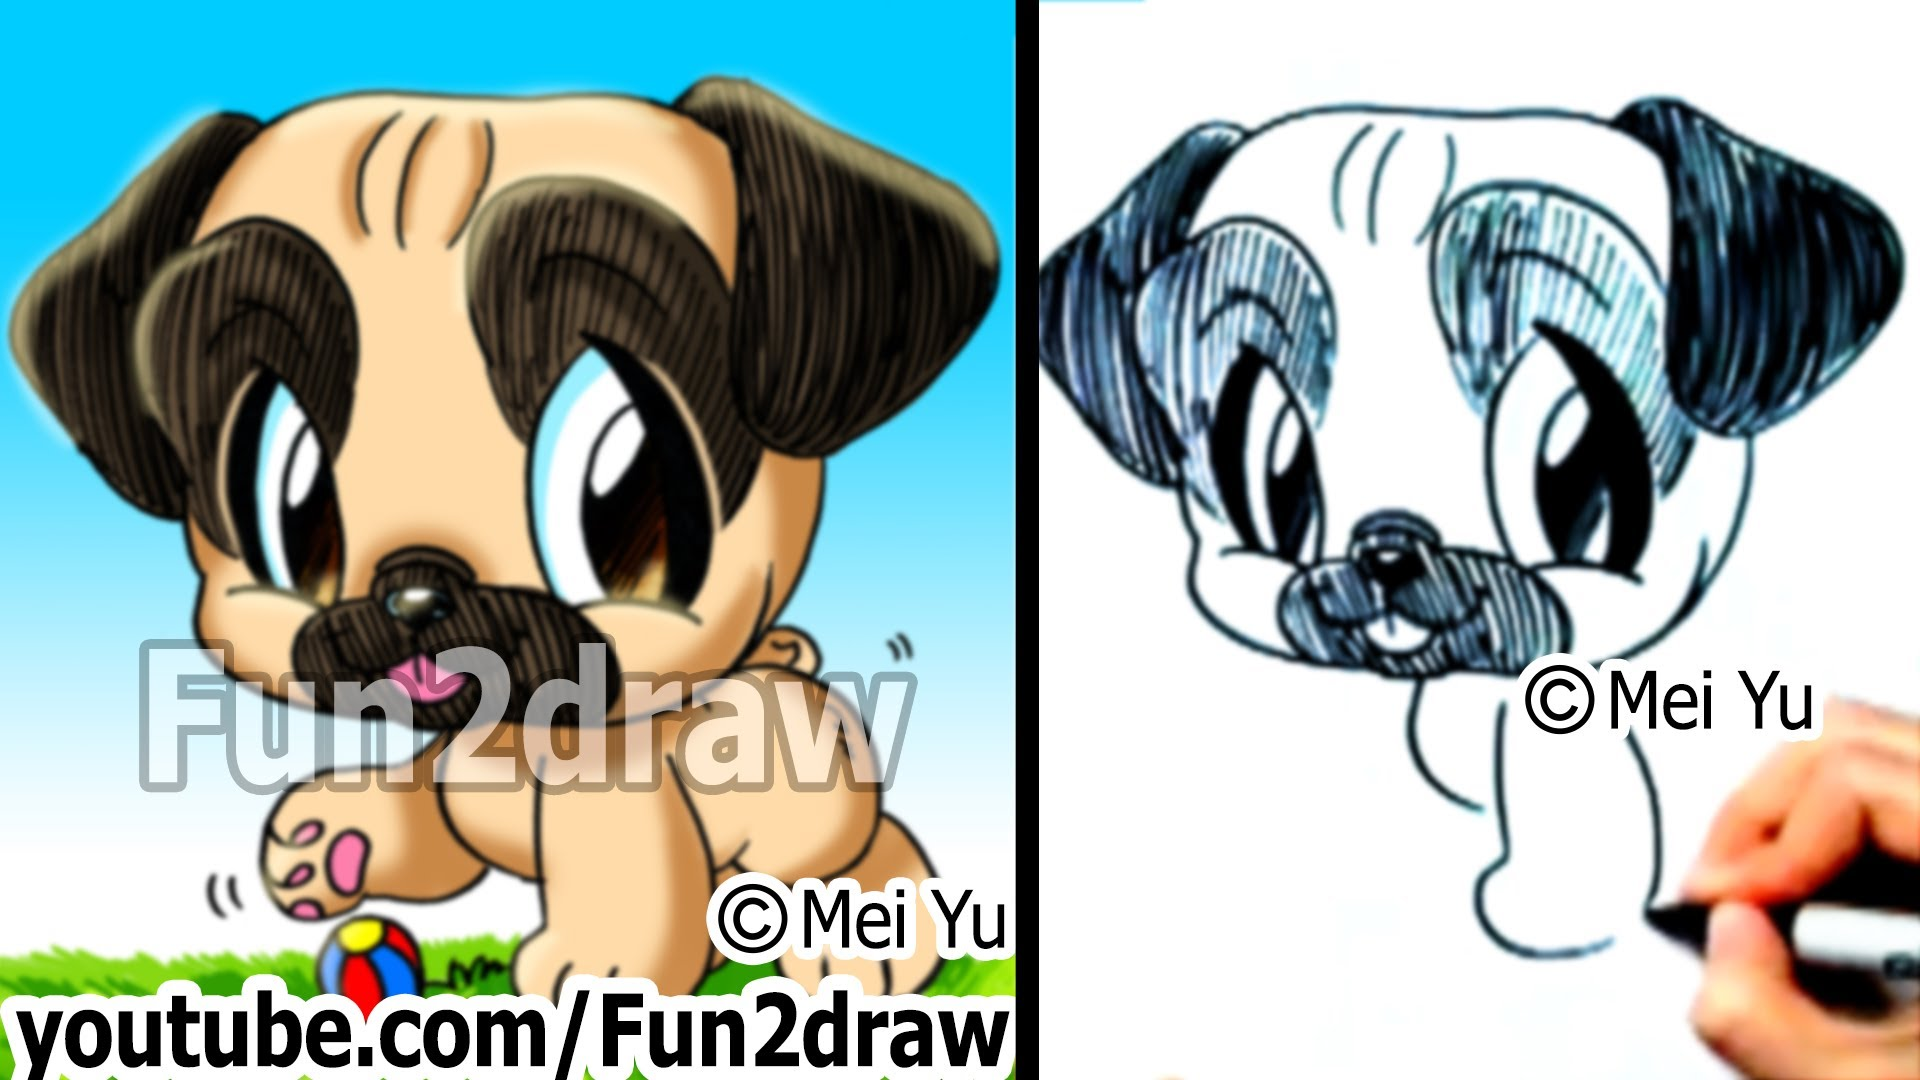 Drawn pug beginner Draw to Fun2draw Things puppy